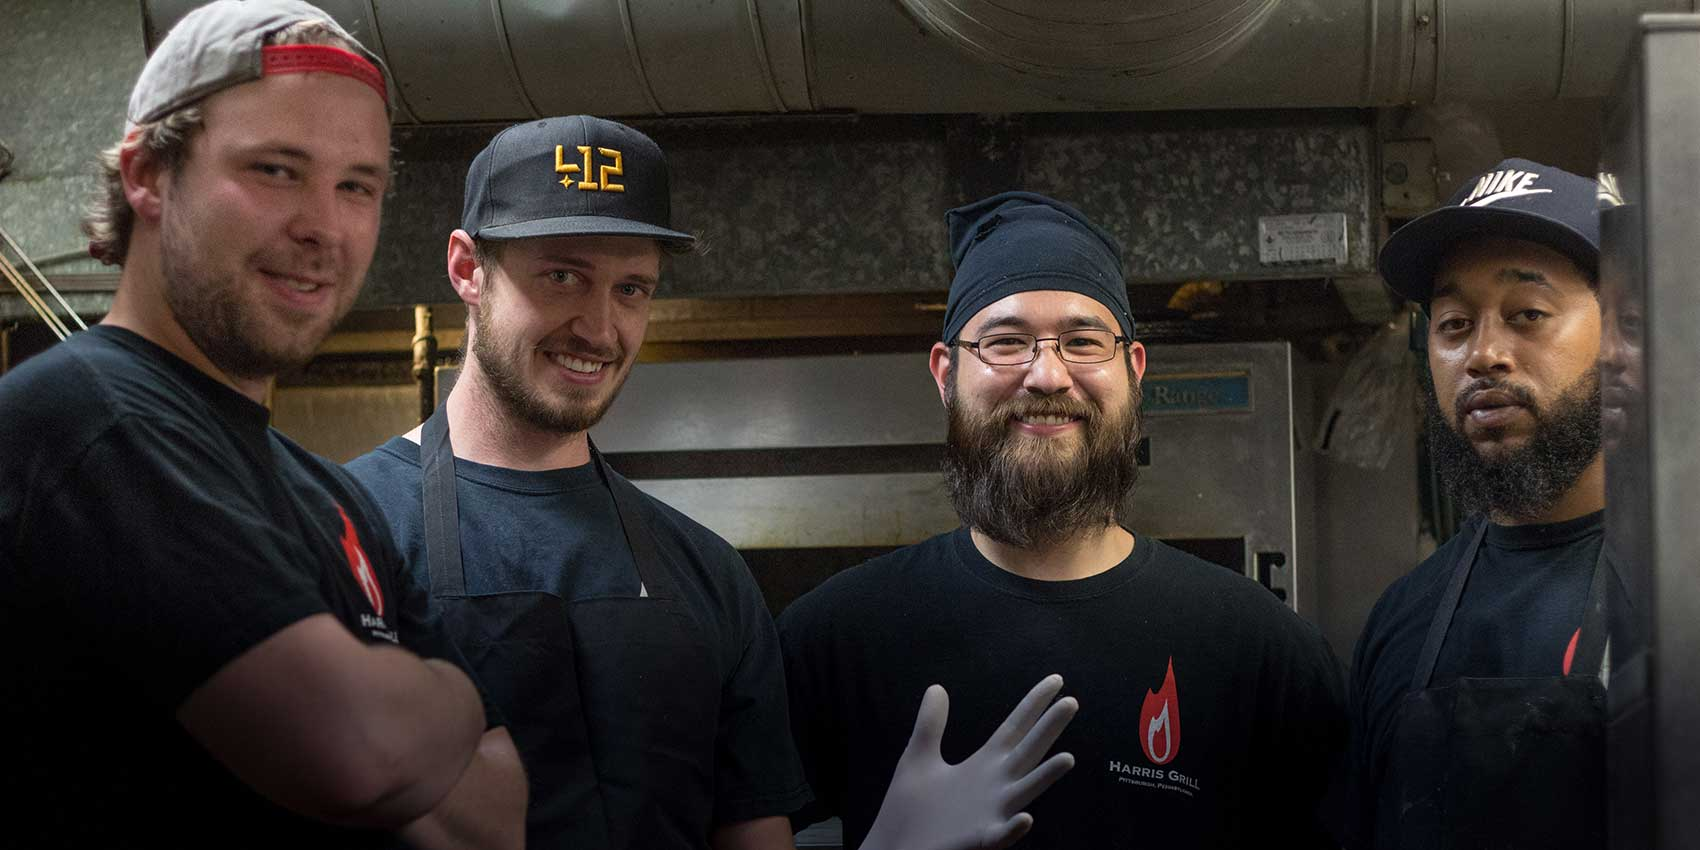 Harris-Grill-Team-Shadyside-Pittsburgh